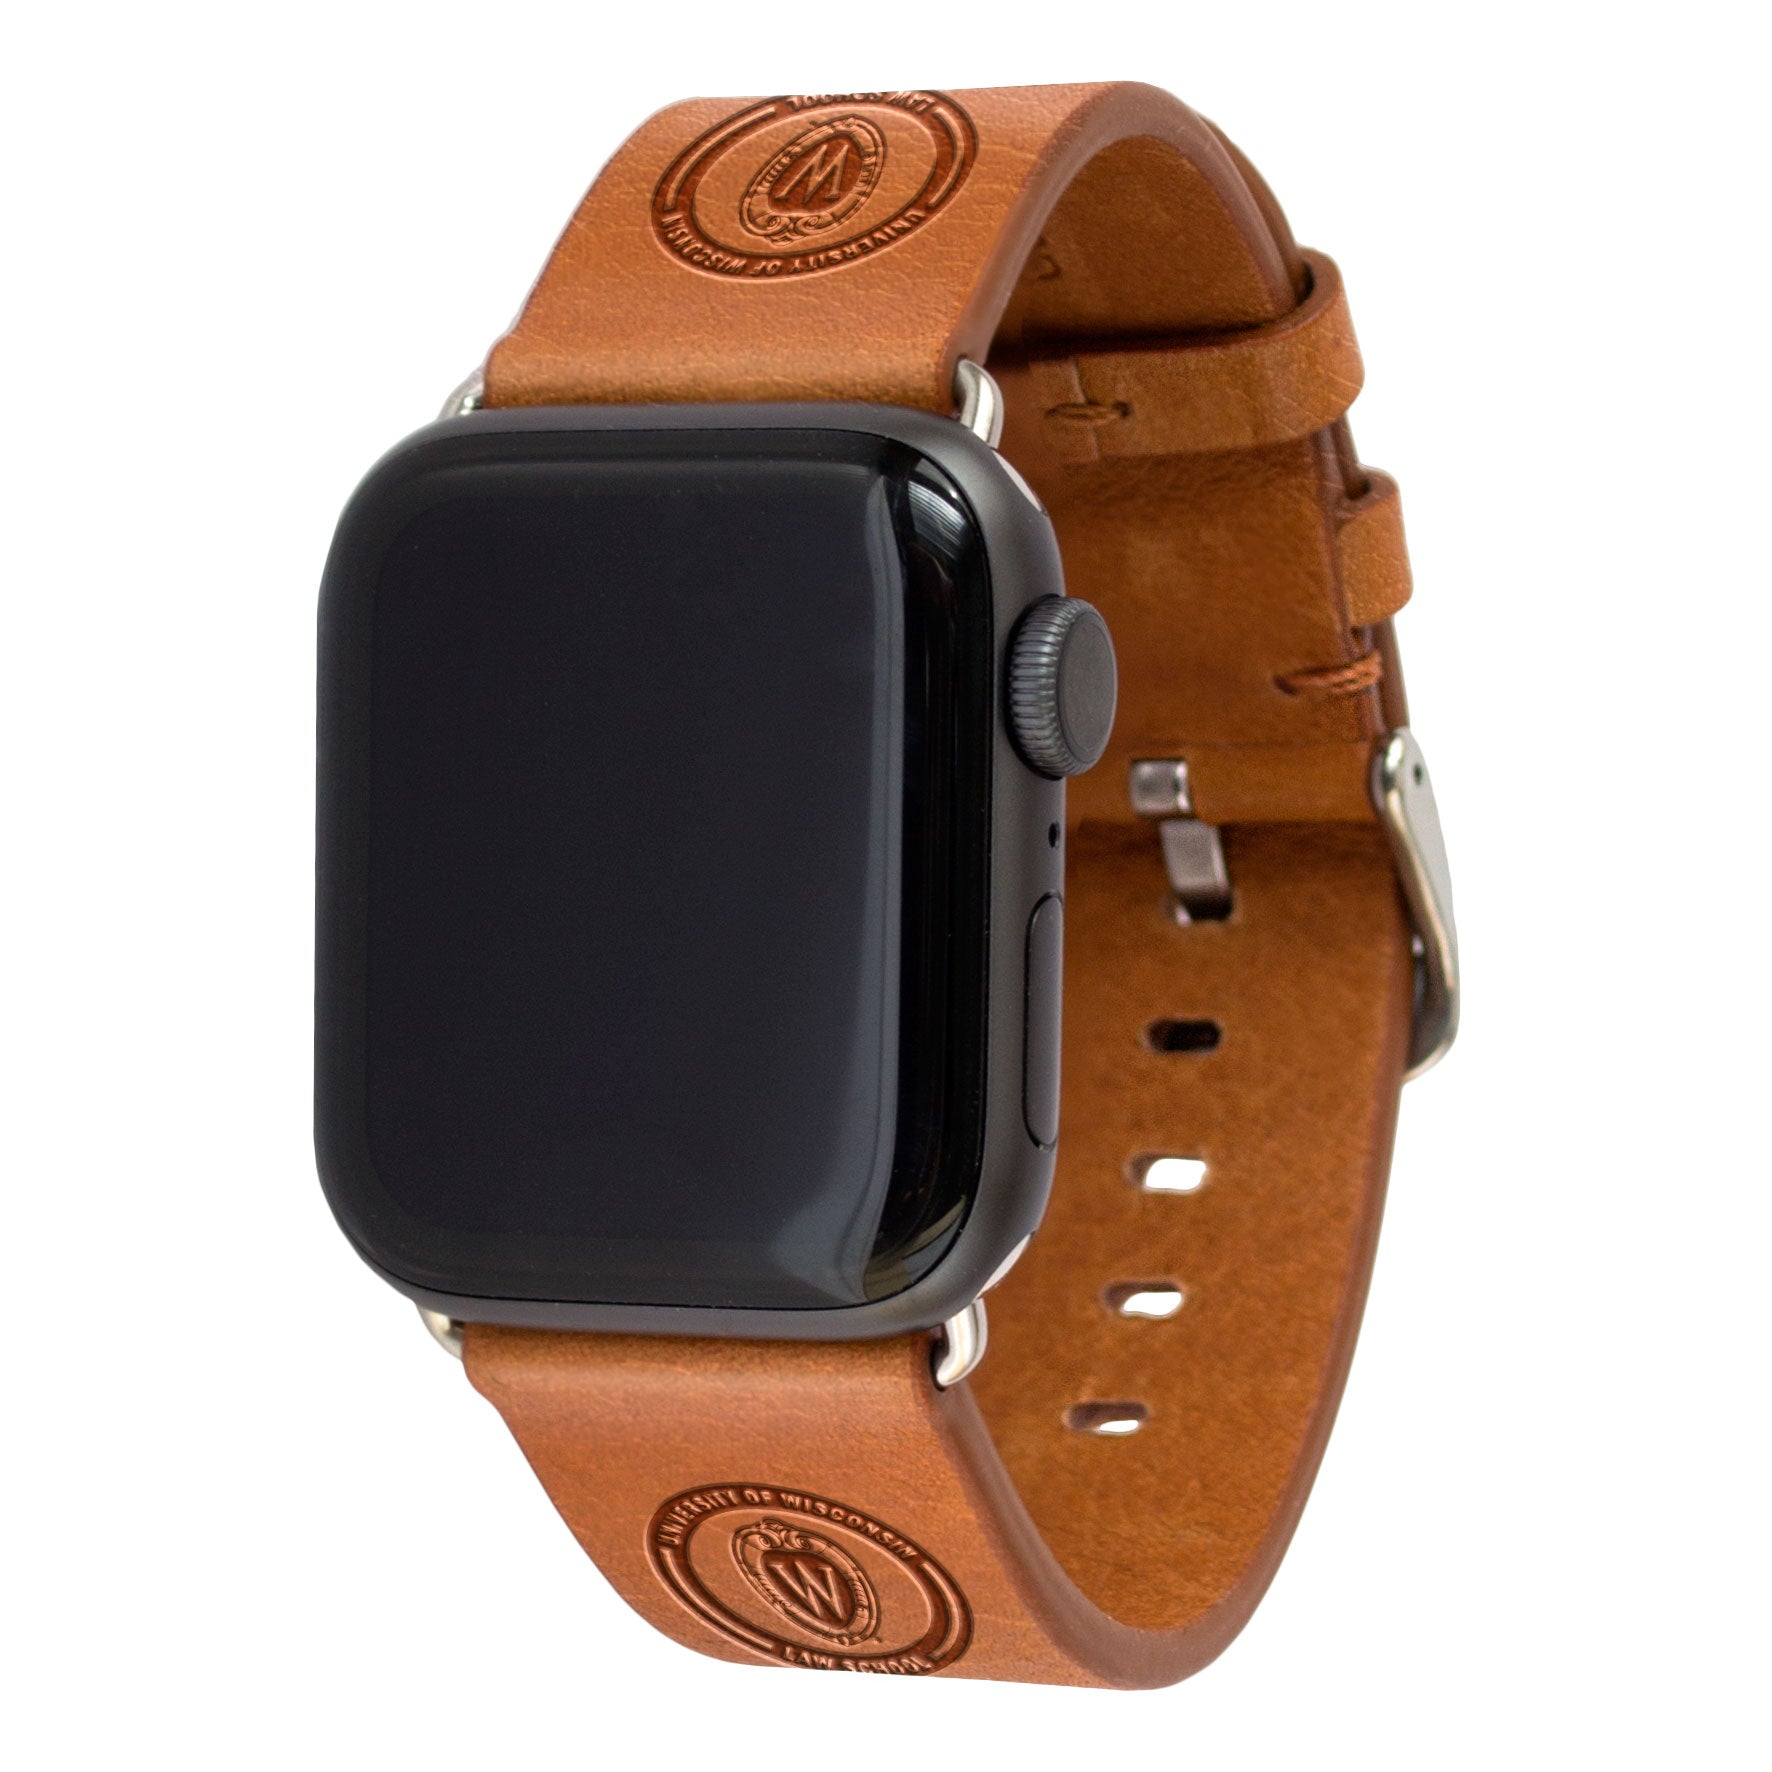 University of Wisconsin Law School Leather Apple Watch Band - AffinityBands